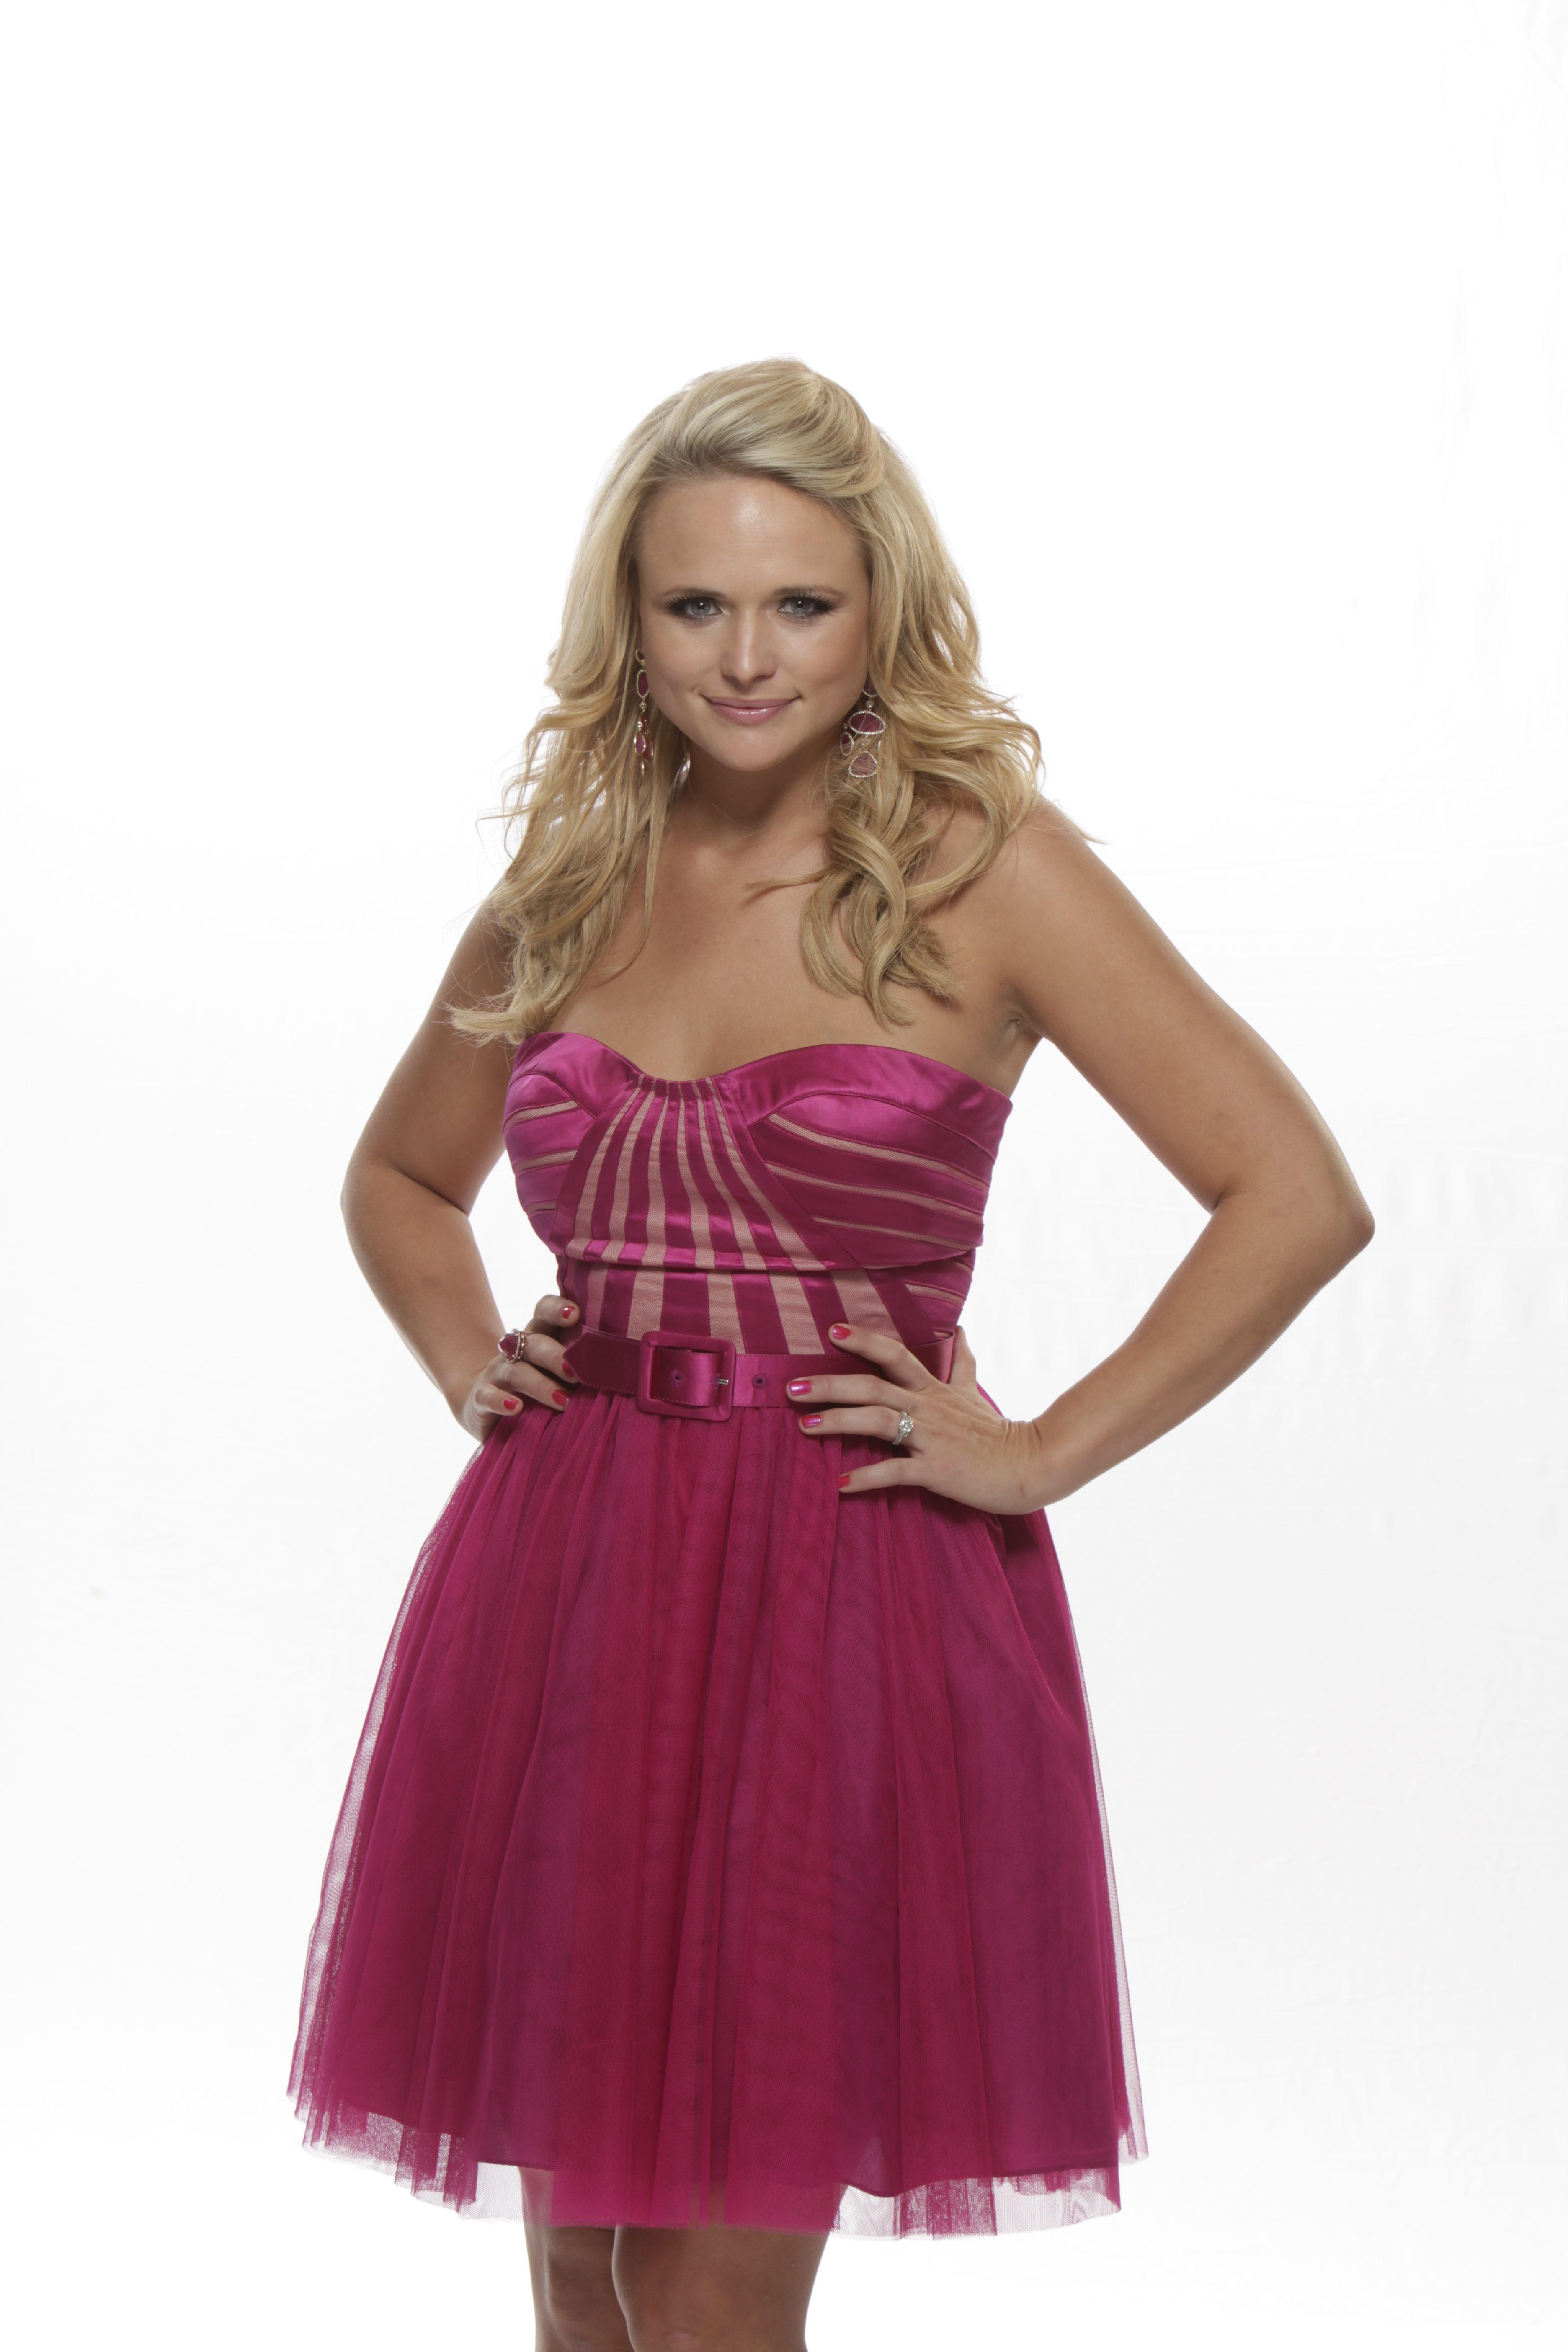 Miranda Lambert scheduled to perform on the 48th annual ACM Awards